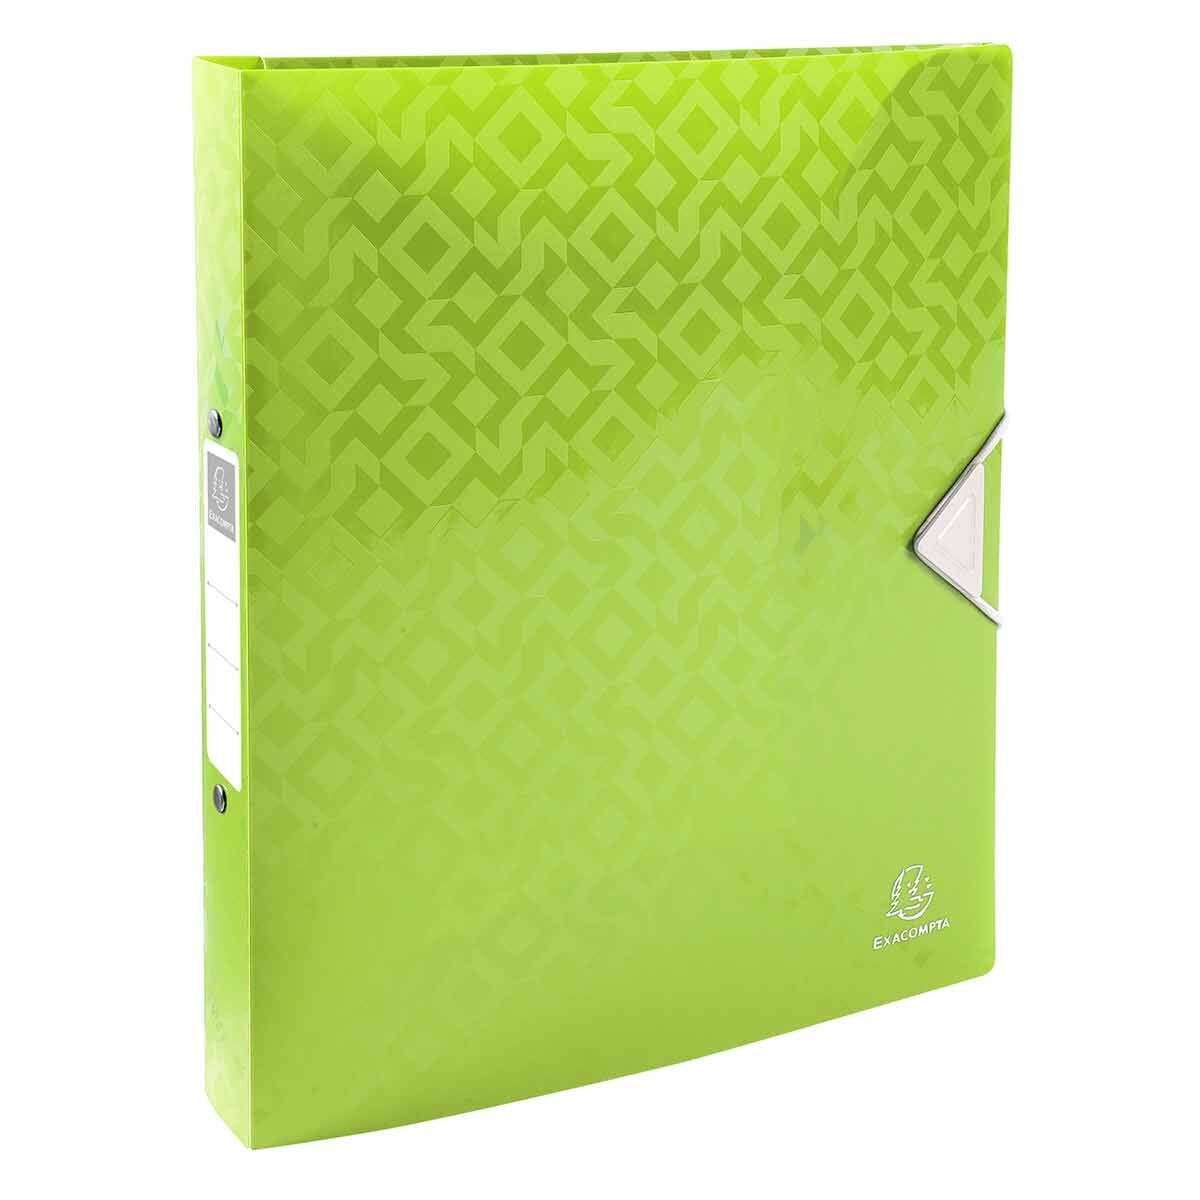 Exacompta PP Offix Ring Binder A4 Plus 2 Ring 30mm Pack of 10 Assorted